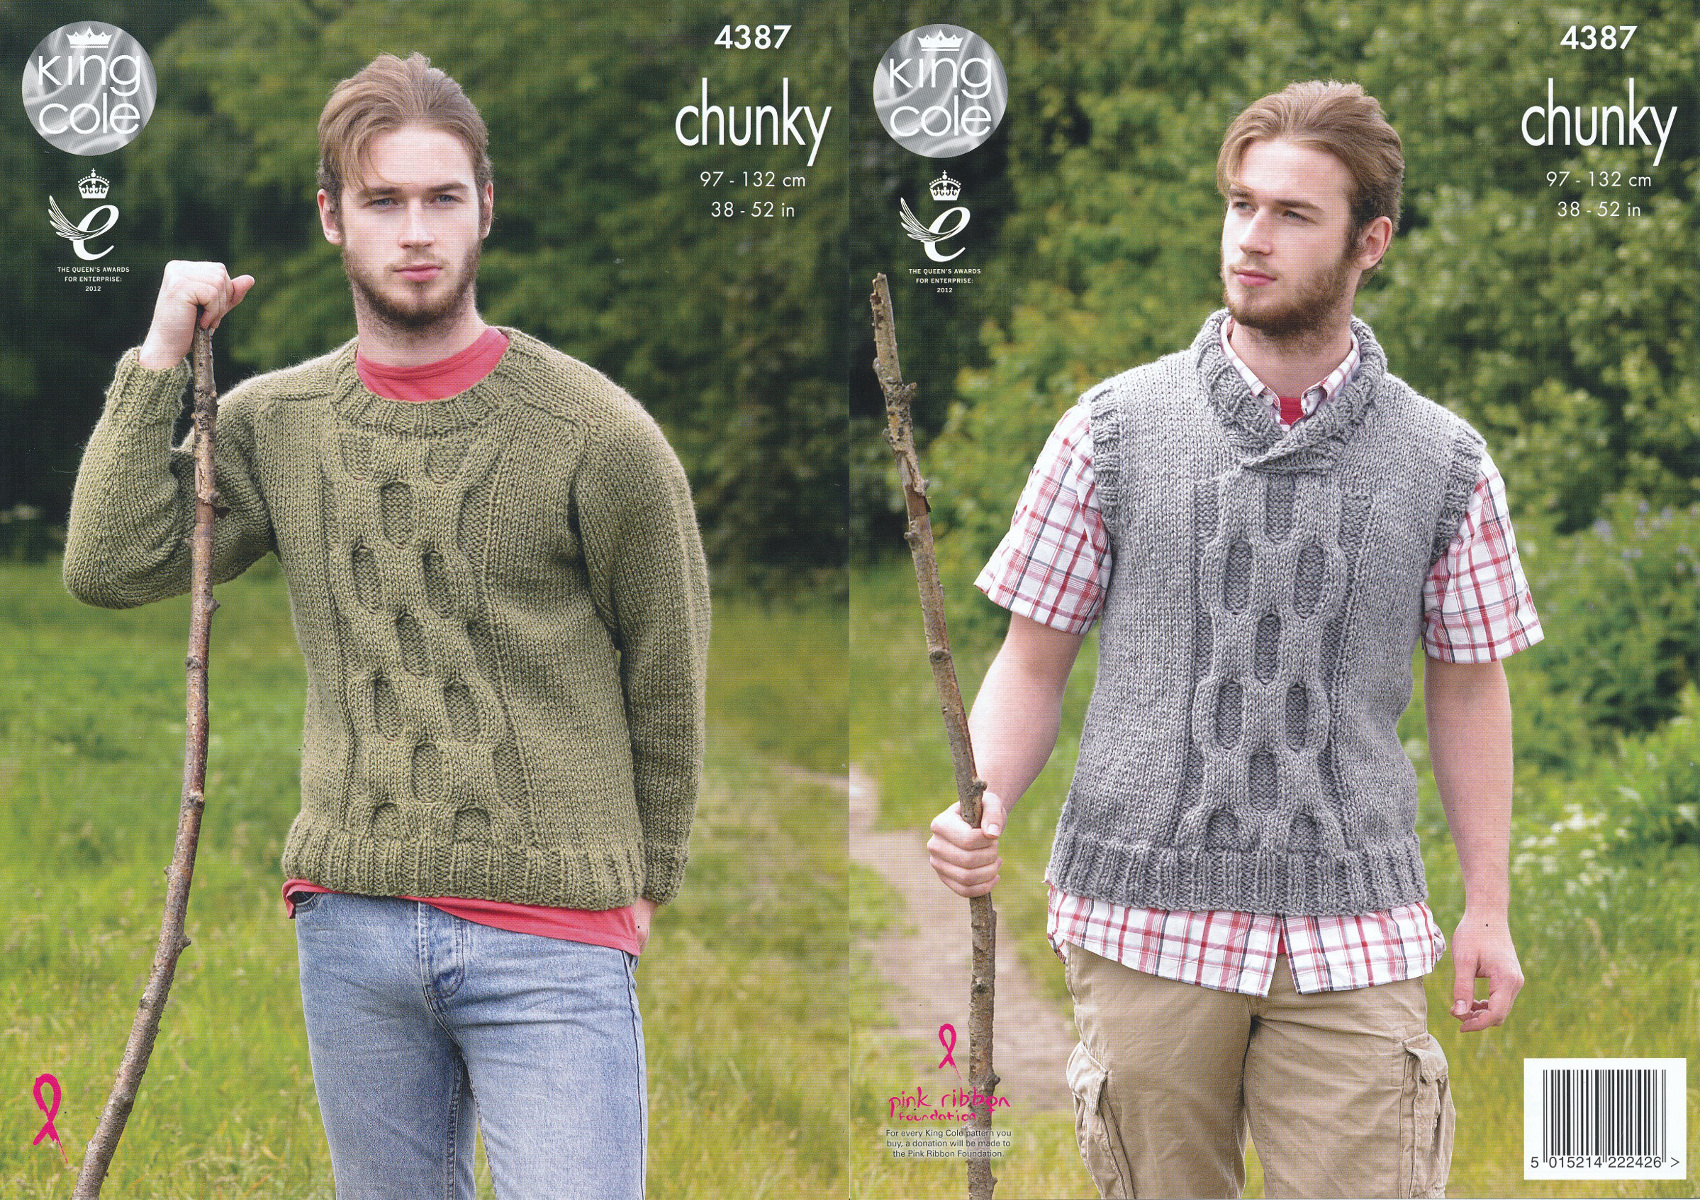 Mens big value chunky knitting pattern king cole cable knit jumper item description this chunky knitting pattern bankloansurffo Gallery